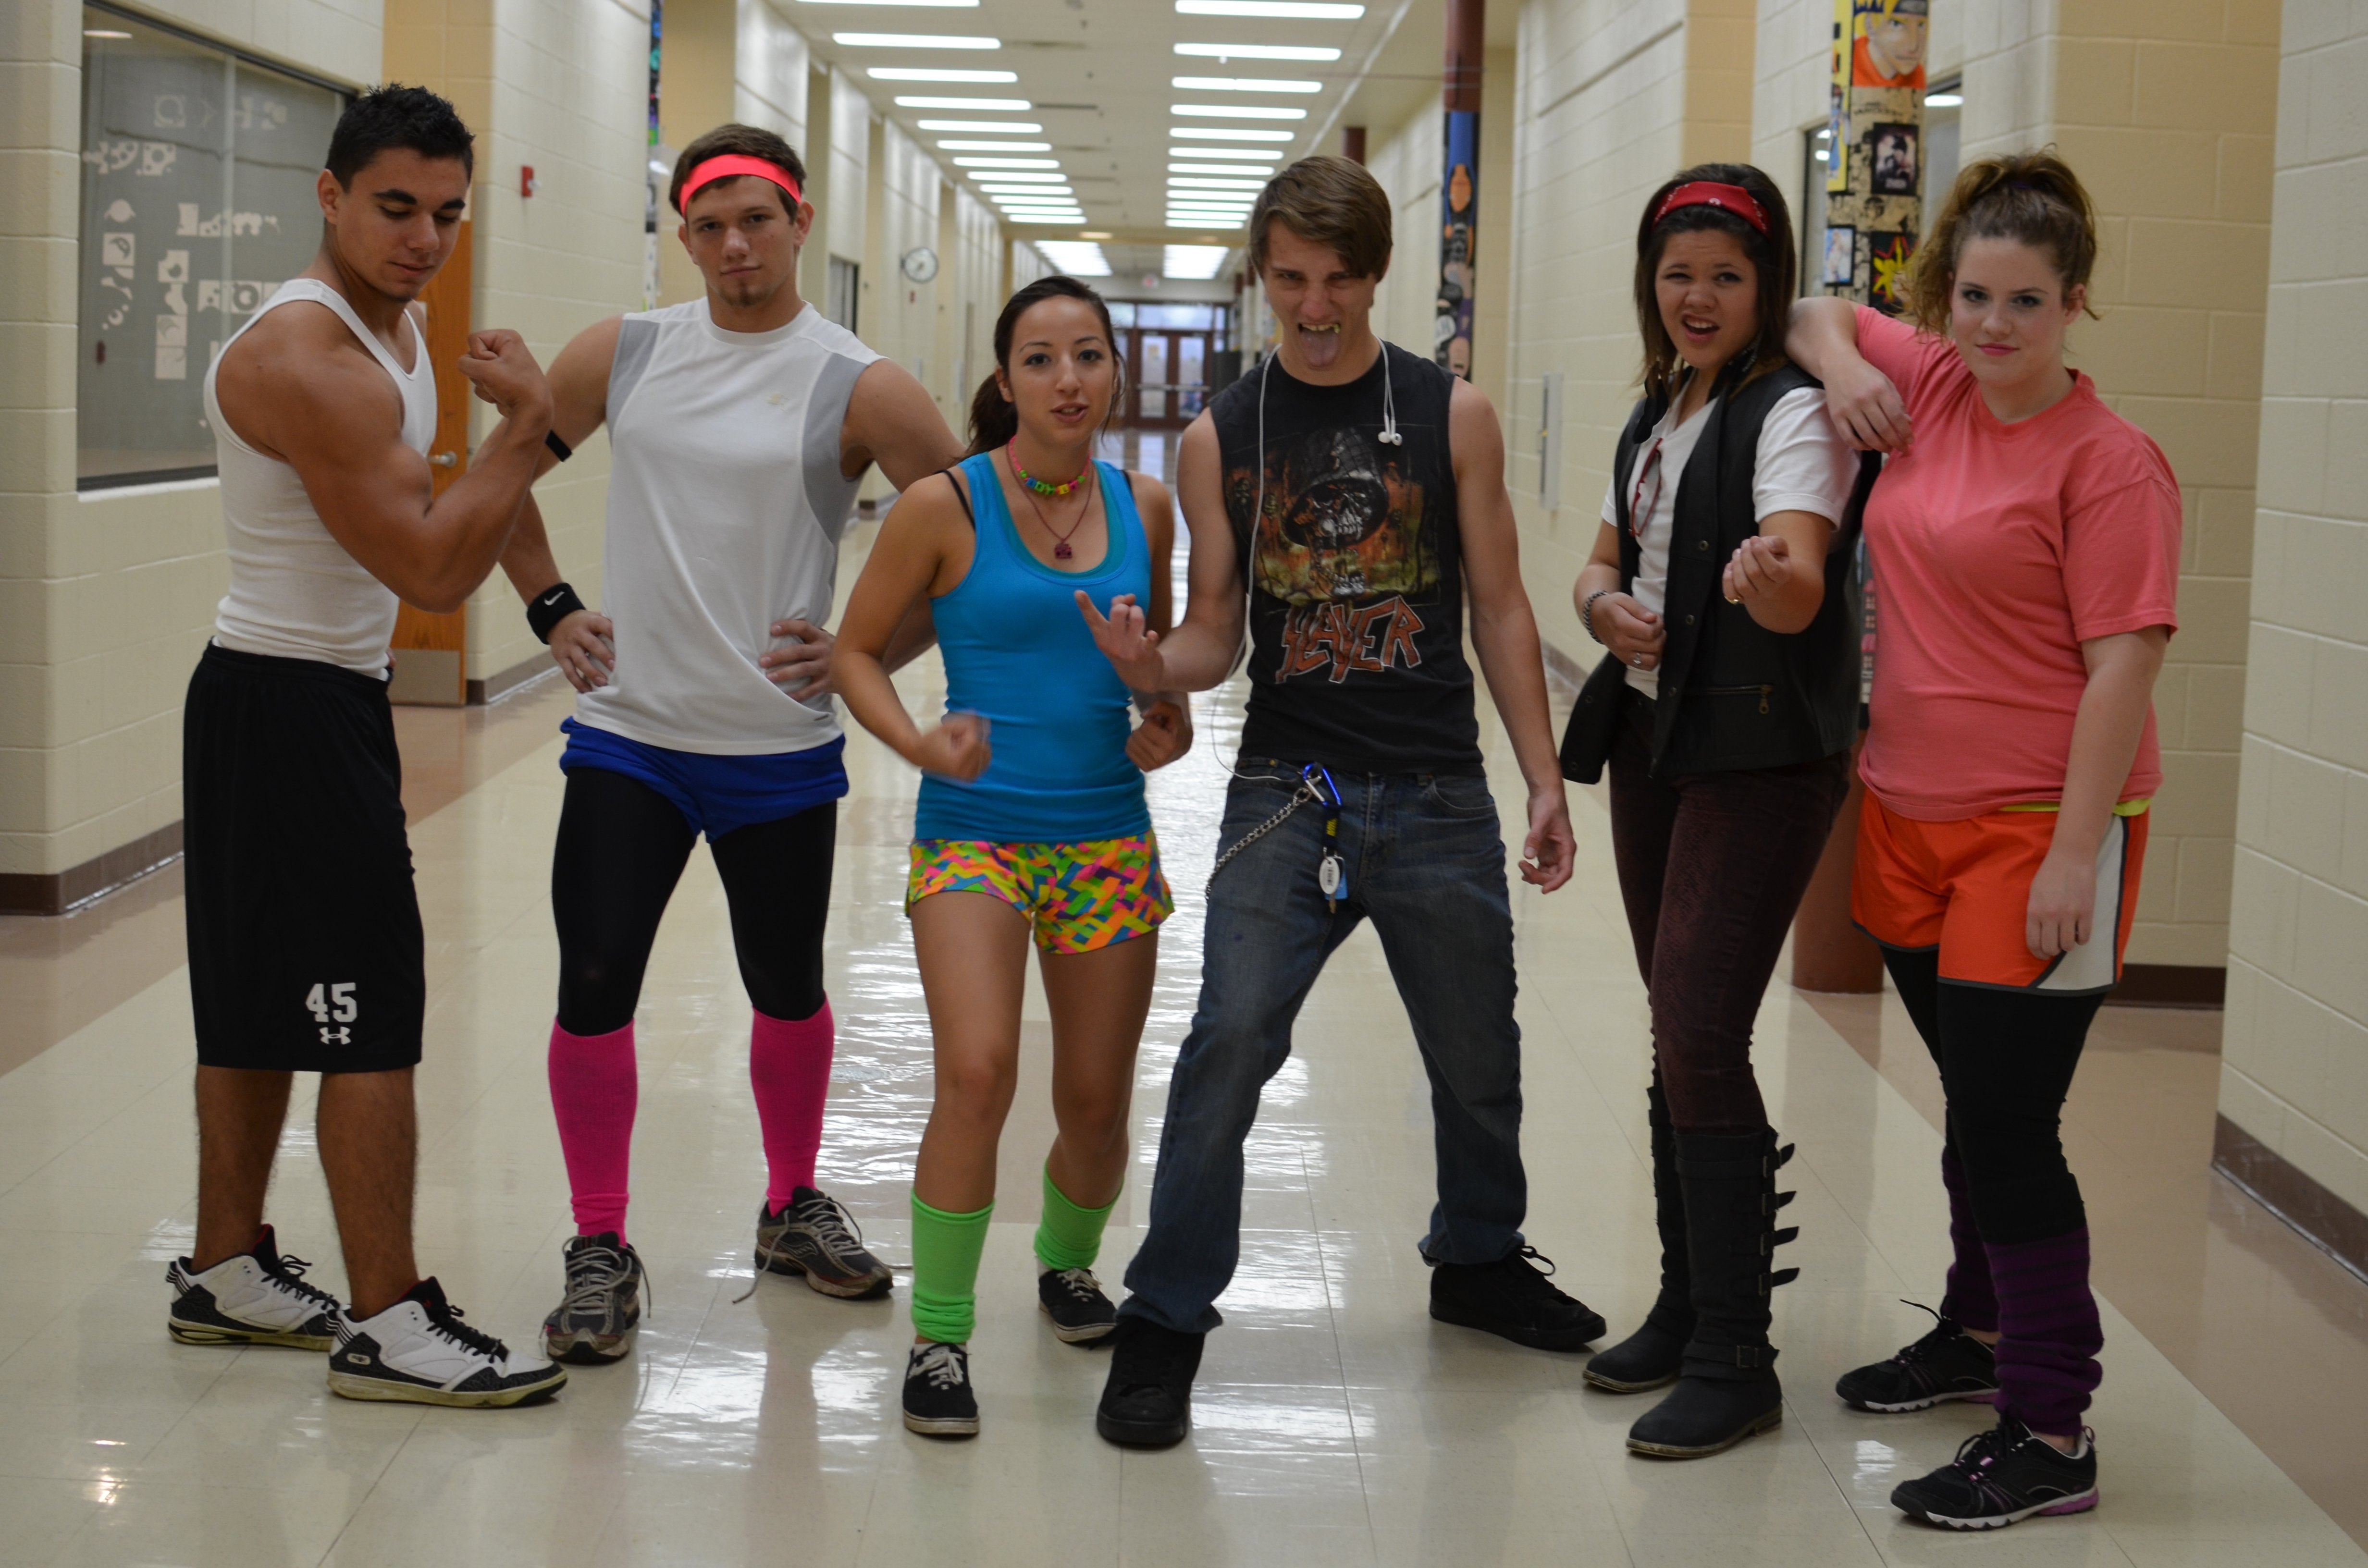 10 Perfect Character Day Ideas For Spirit Week decades day spirit week the huntley voice online 3 2020